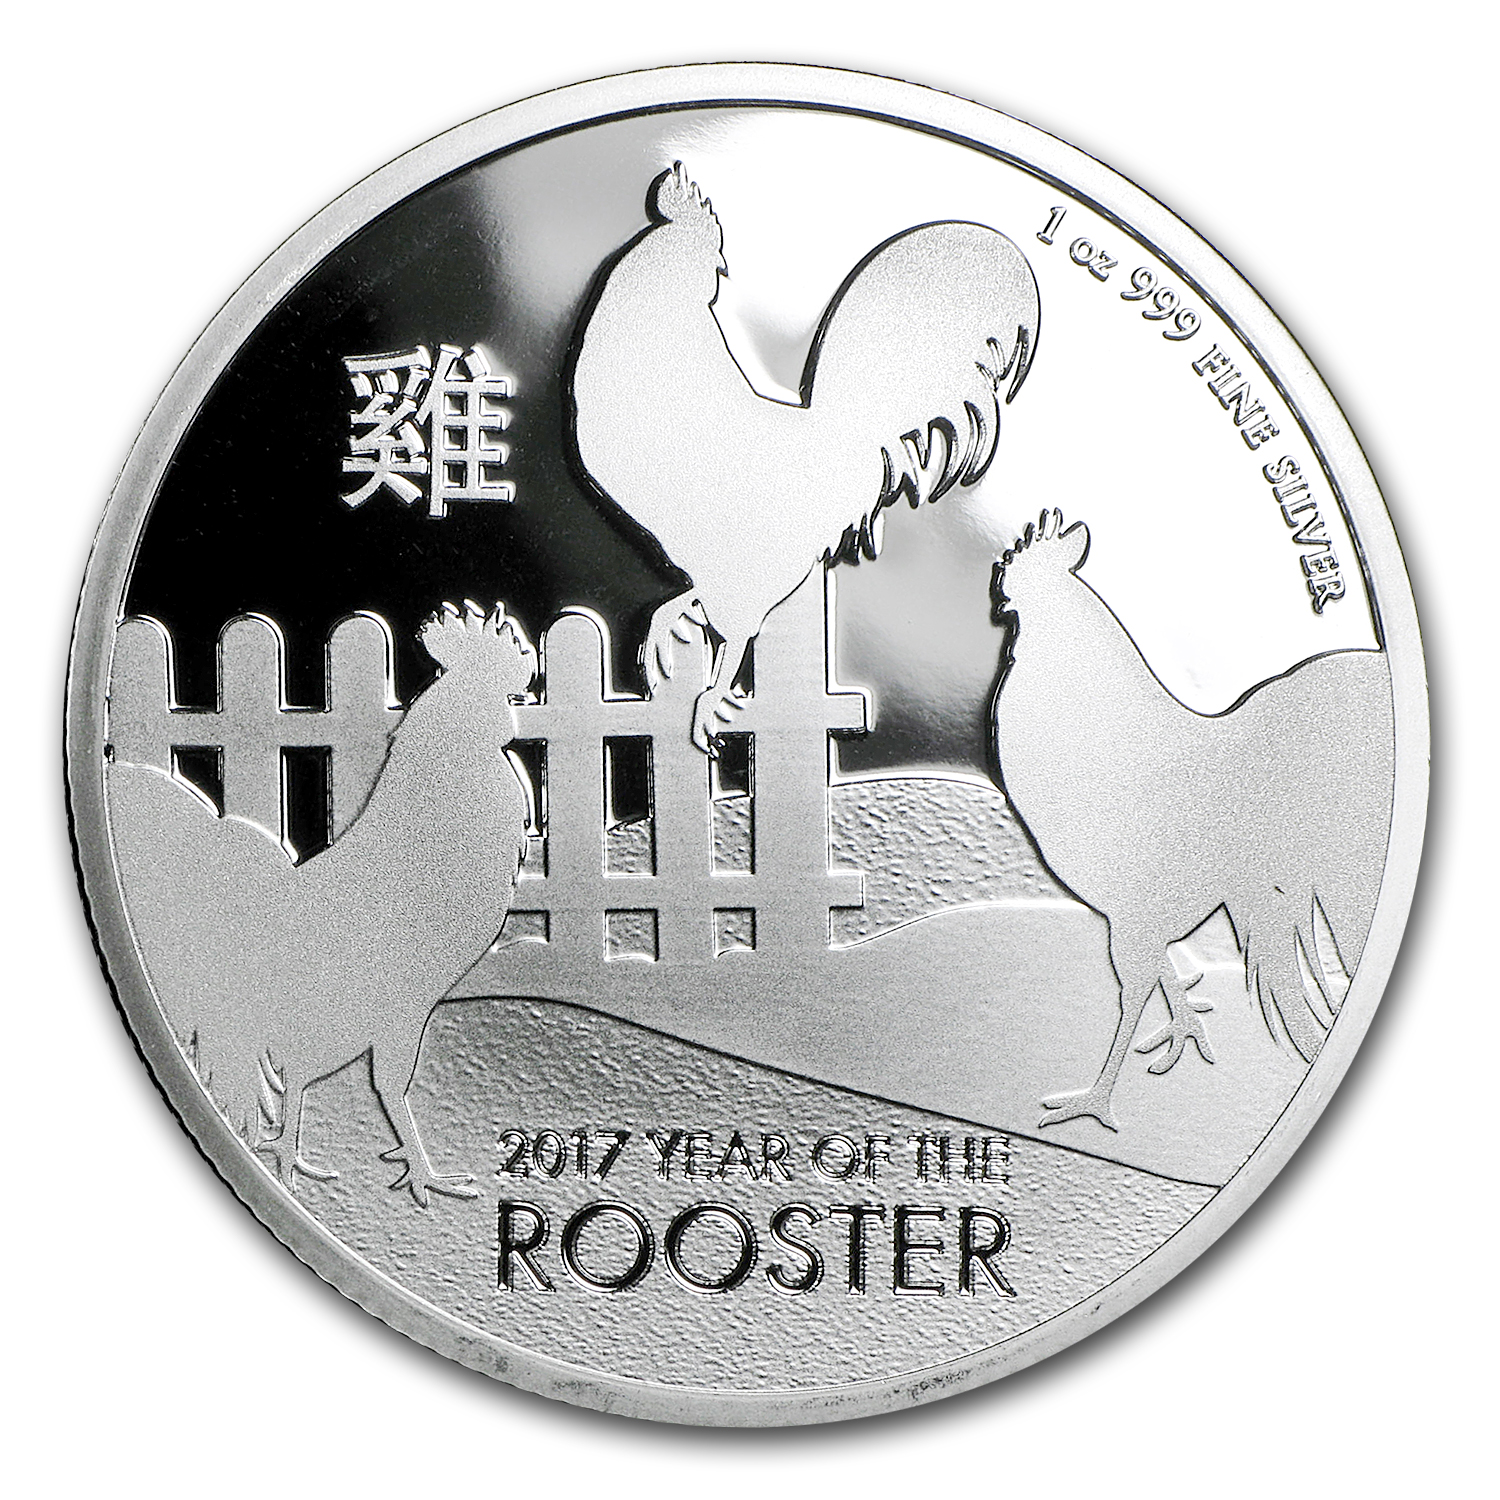 2017 New Zealand 1 oz Silver $2 Lunar Year of the Rooster BU